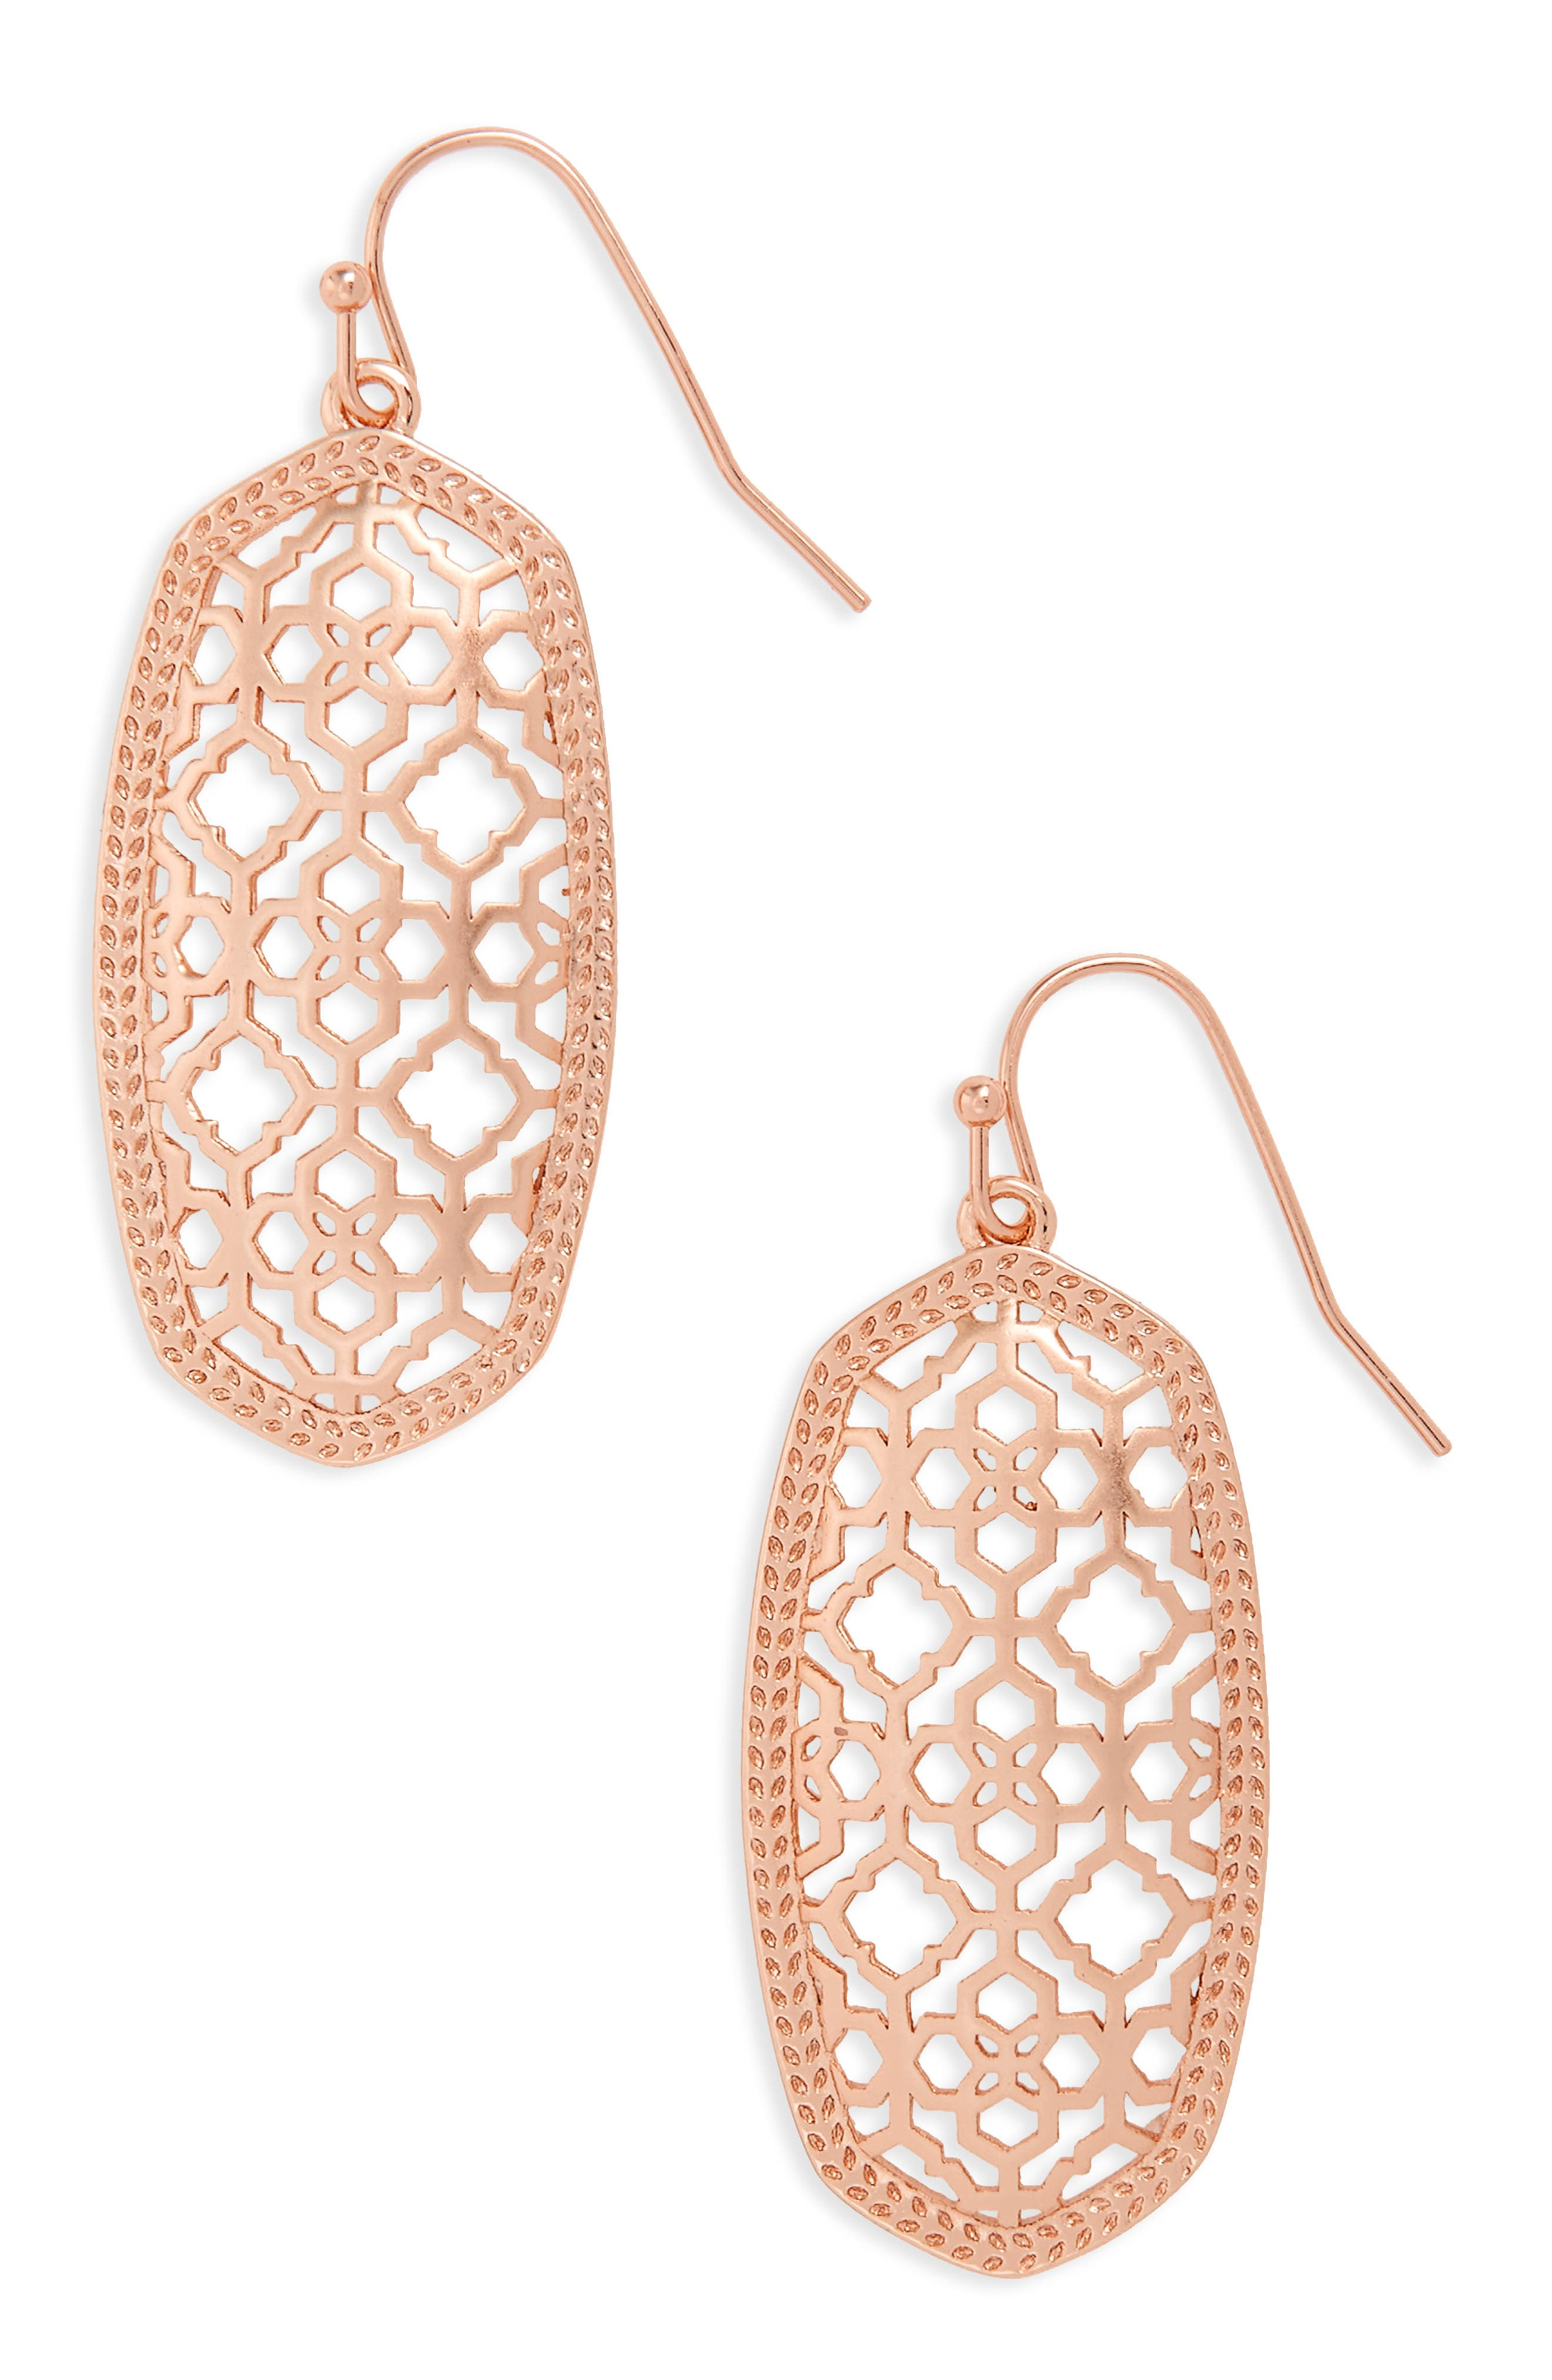 Main Image - Kendra Scott Elle Filigree Drop Earrings